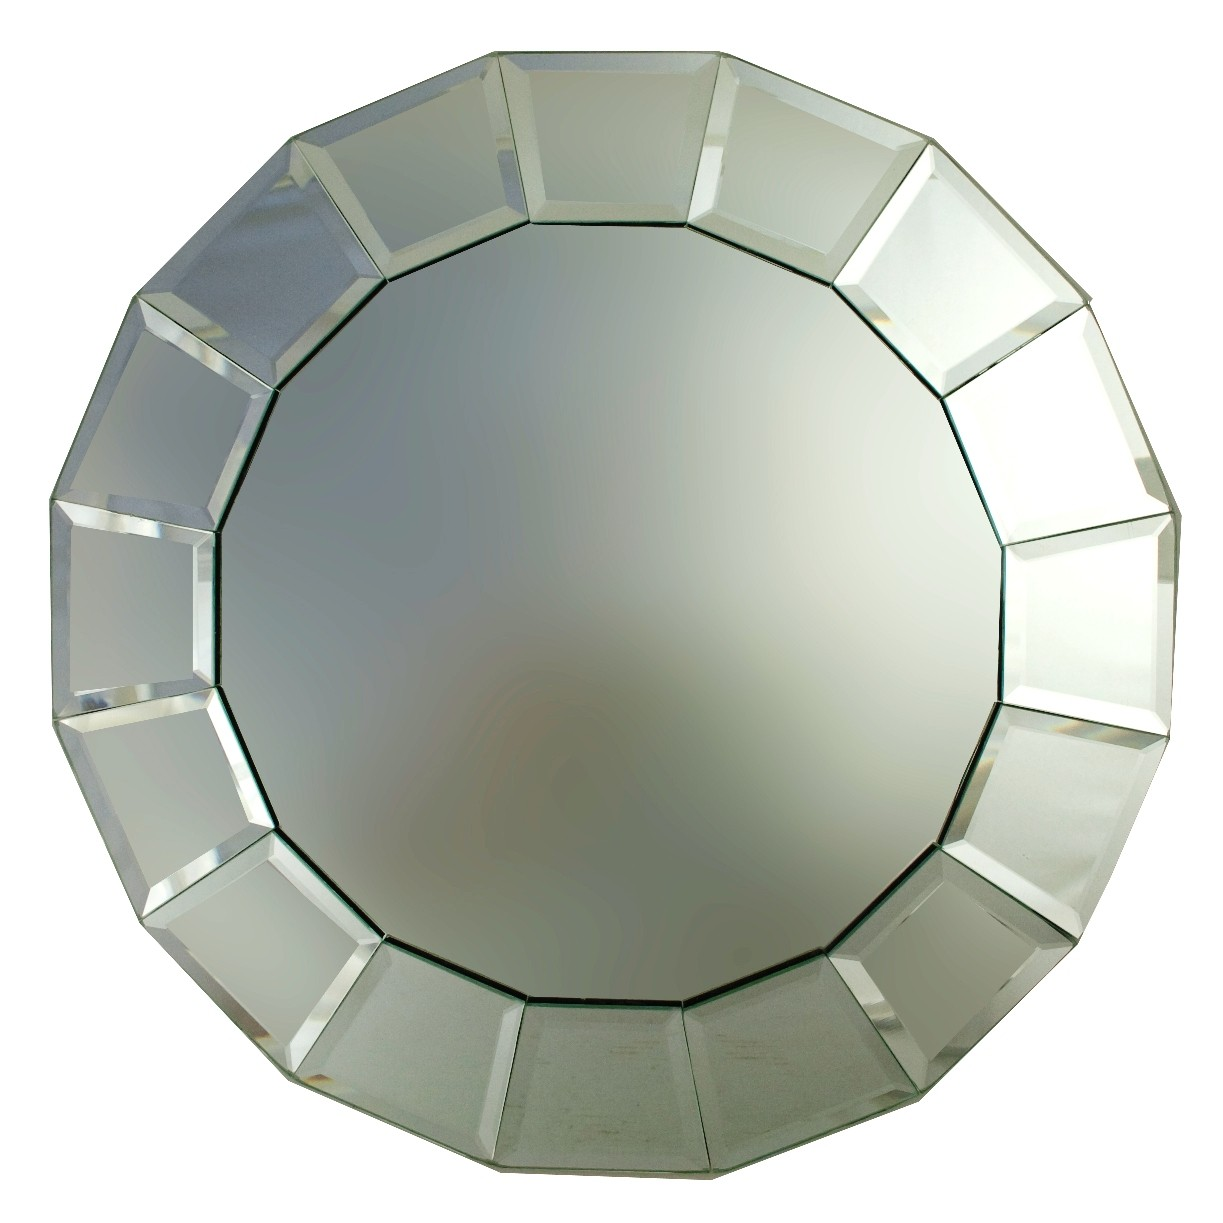 "Jay Companies 1330094 Beveled Block Round Mirror 13"" Charger Plate"